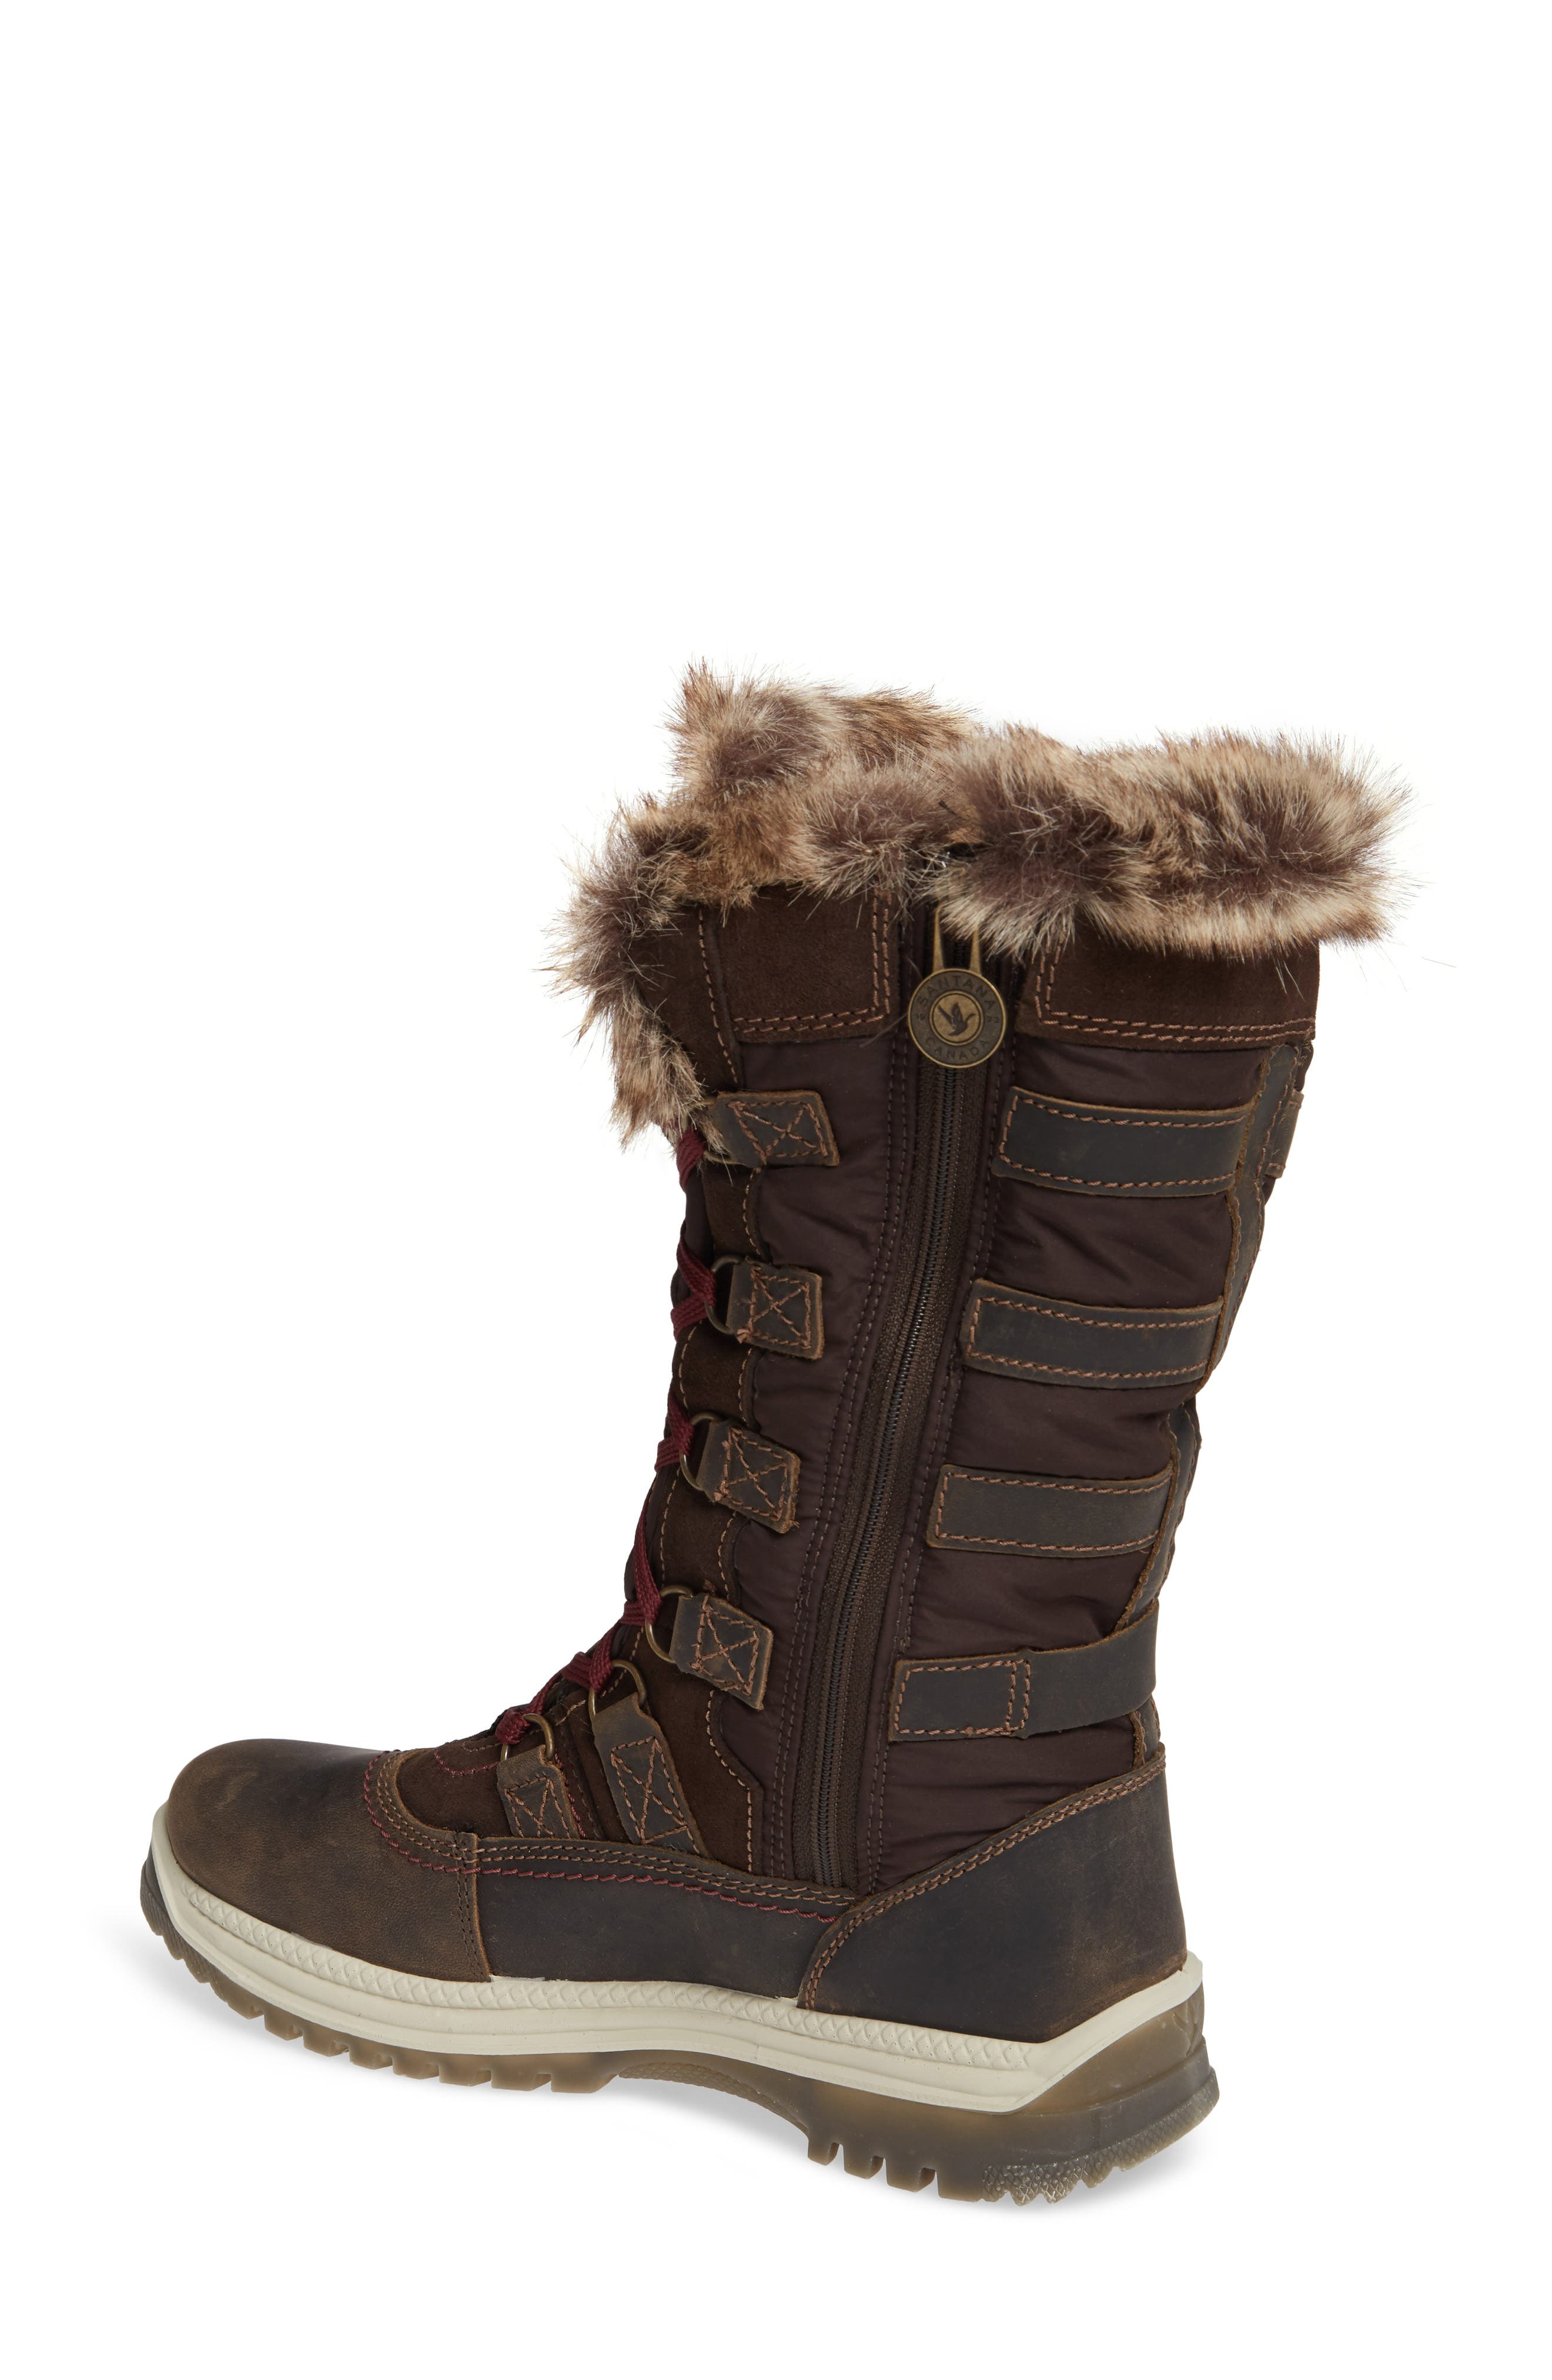 Milani Waterproof Faux Fur Boot,                             Alternate thumbnail 2, color,                             BROWN / BROWN LEATHER